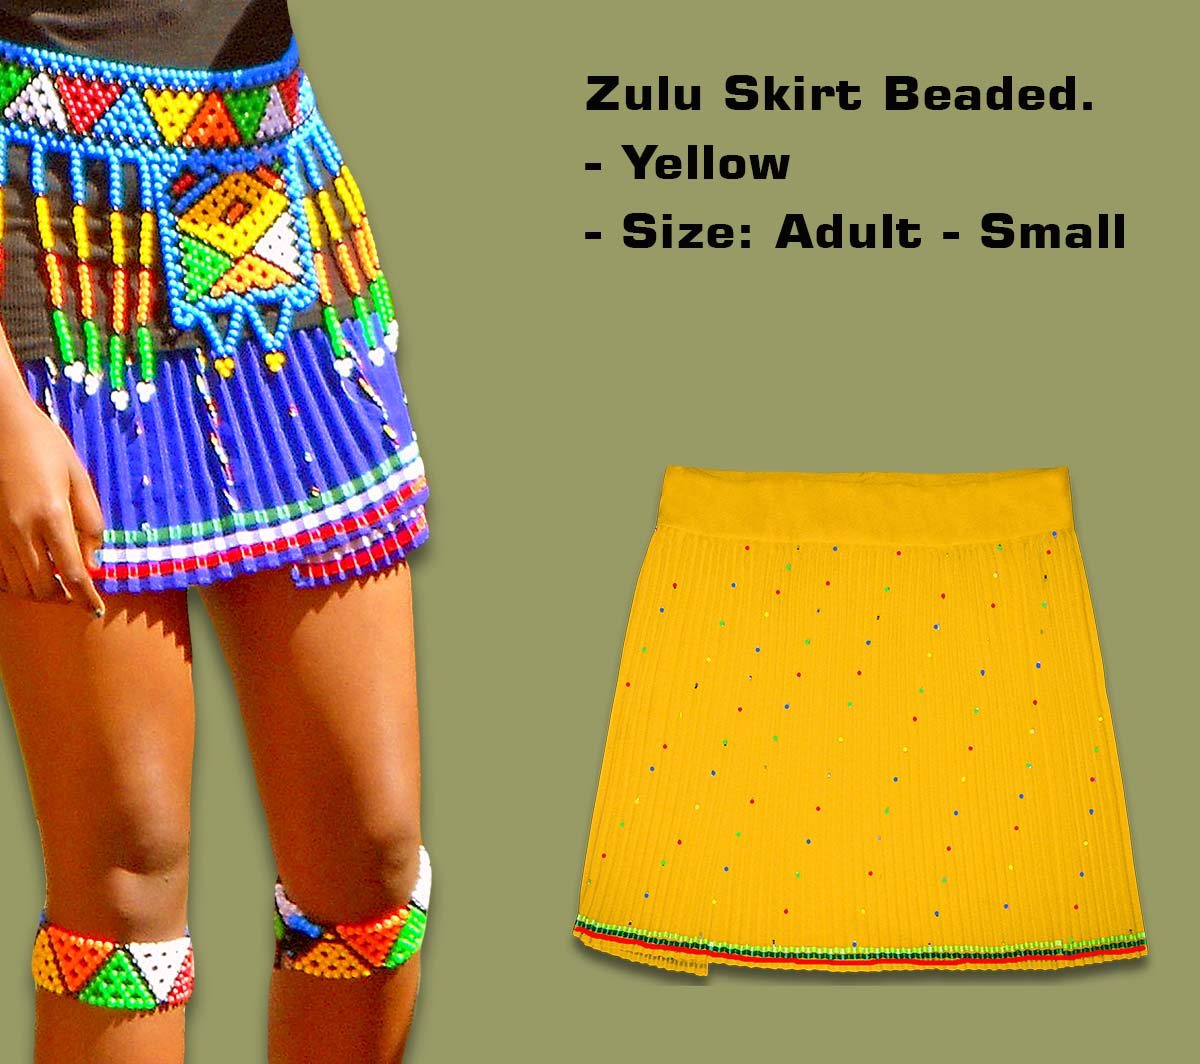 Beaded Zulu Skirt Adult Yellow Small